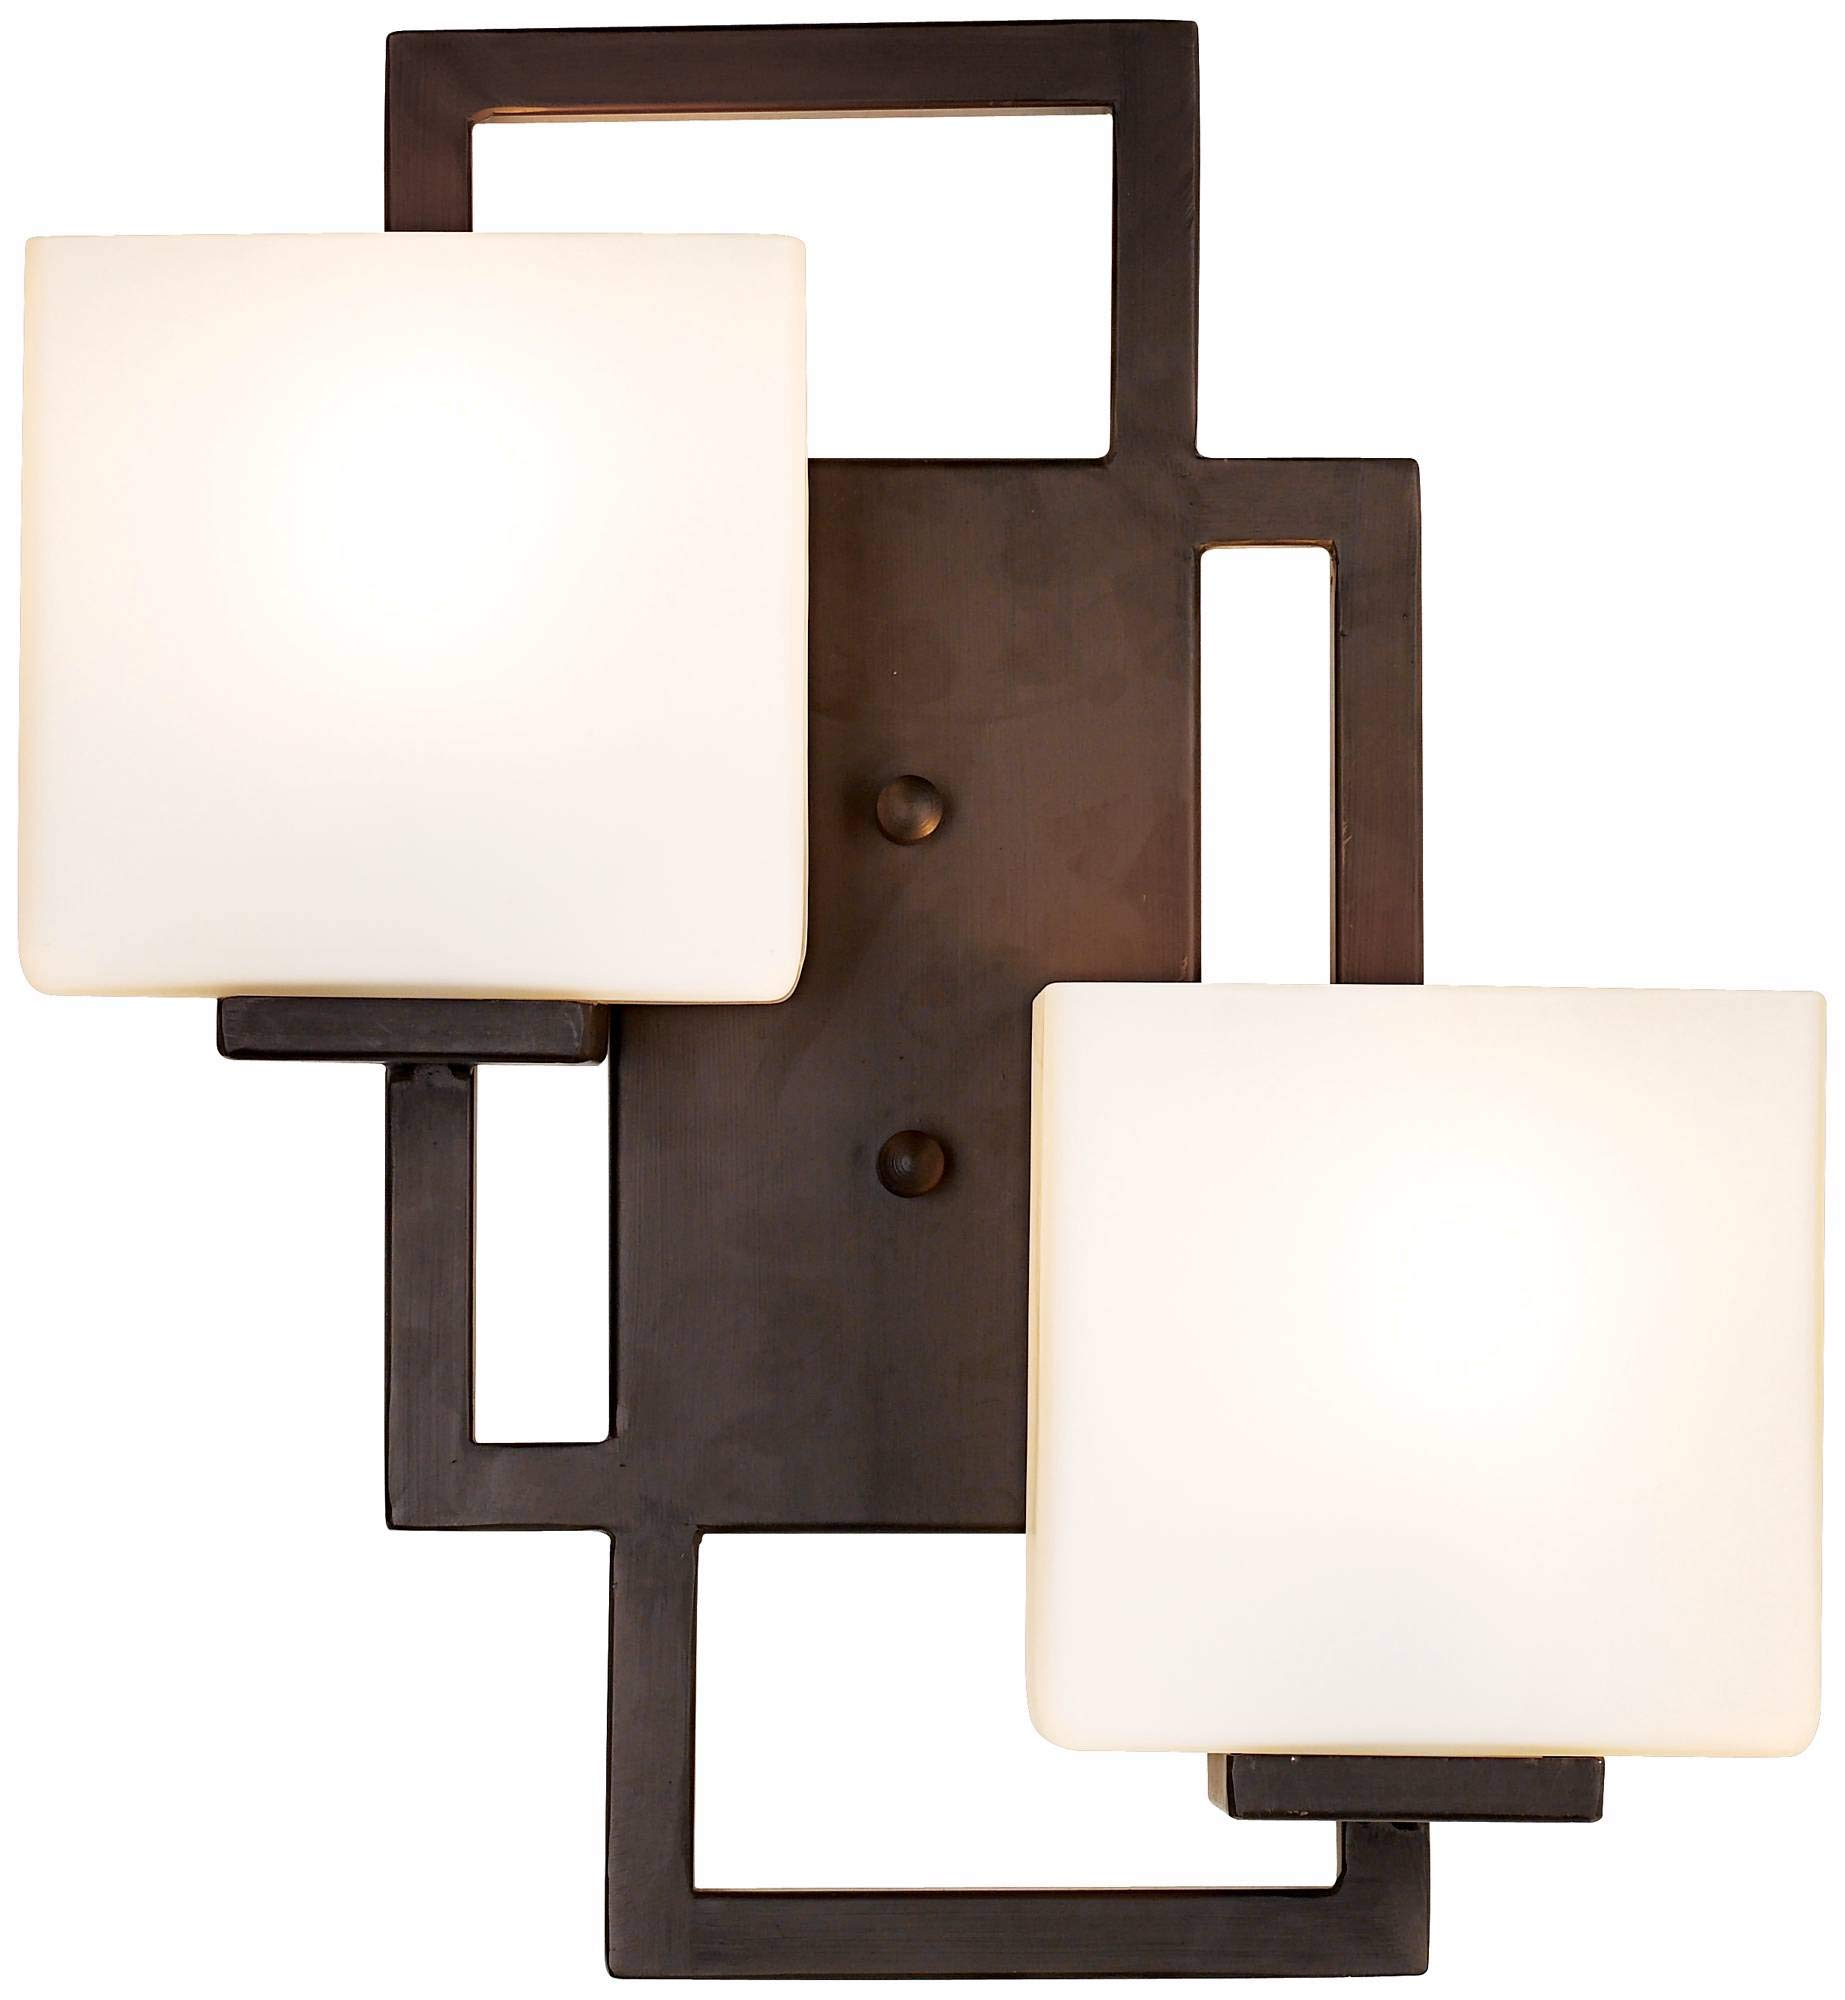 Lighting on The Square Modern Wall Light Bronze 15 1/2'' Square Glass Sconce Fixture for Bathroom Side of Mirror Hallway - Possini Euro Design